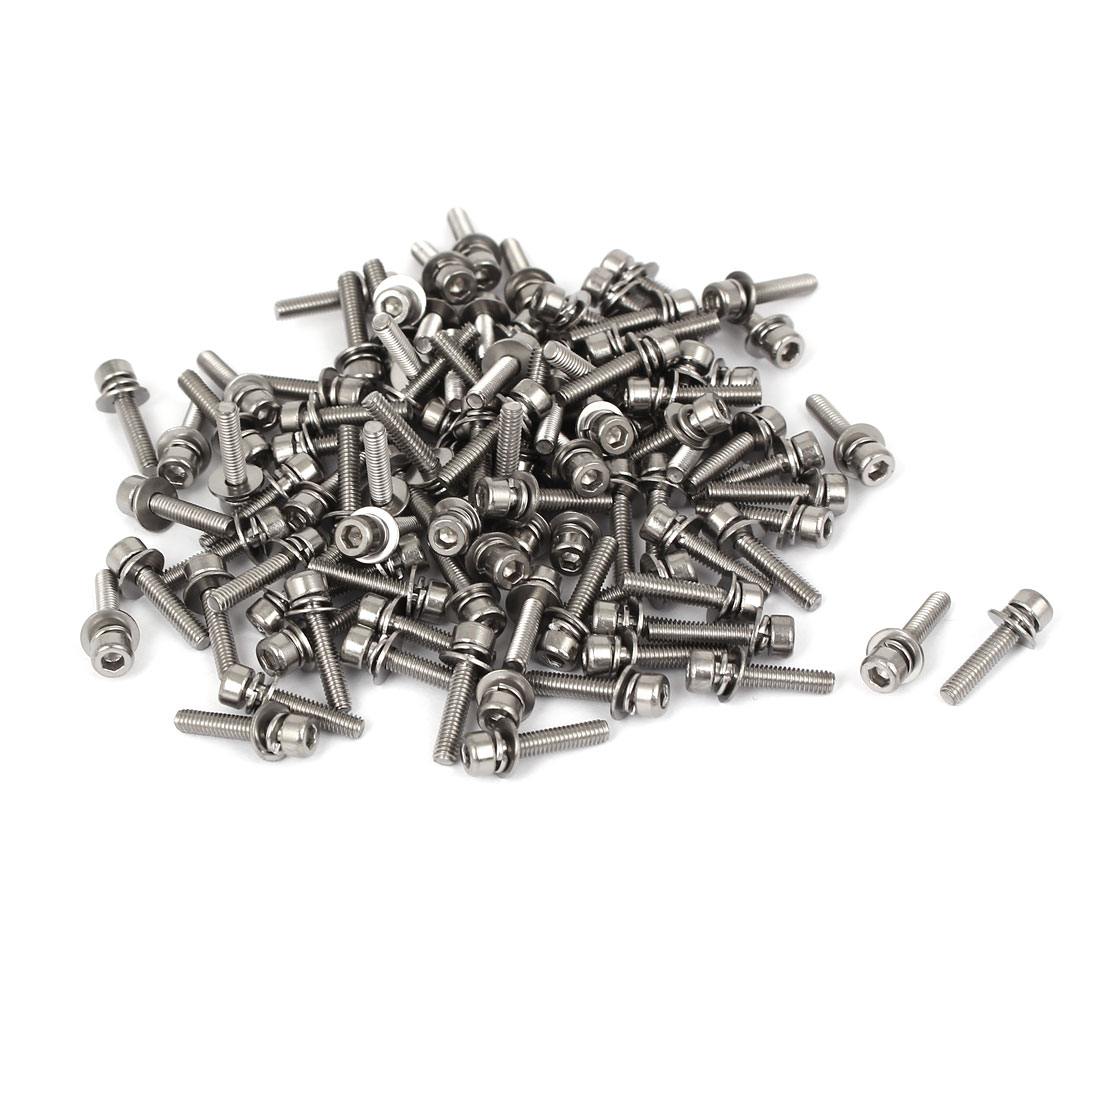 14mm Long M2.5 x 12mm Thread Hex Socket Head Cap Screw w Washer 100 Pcs